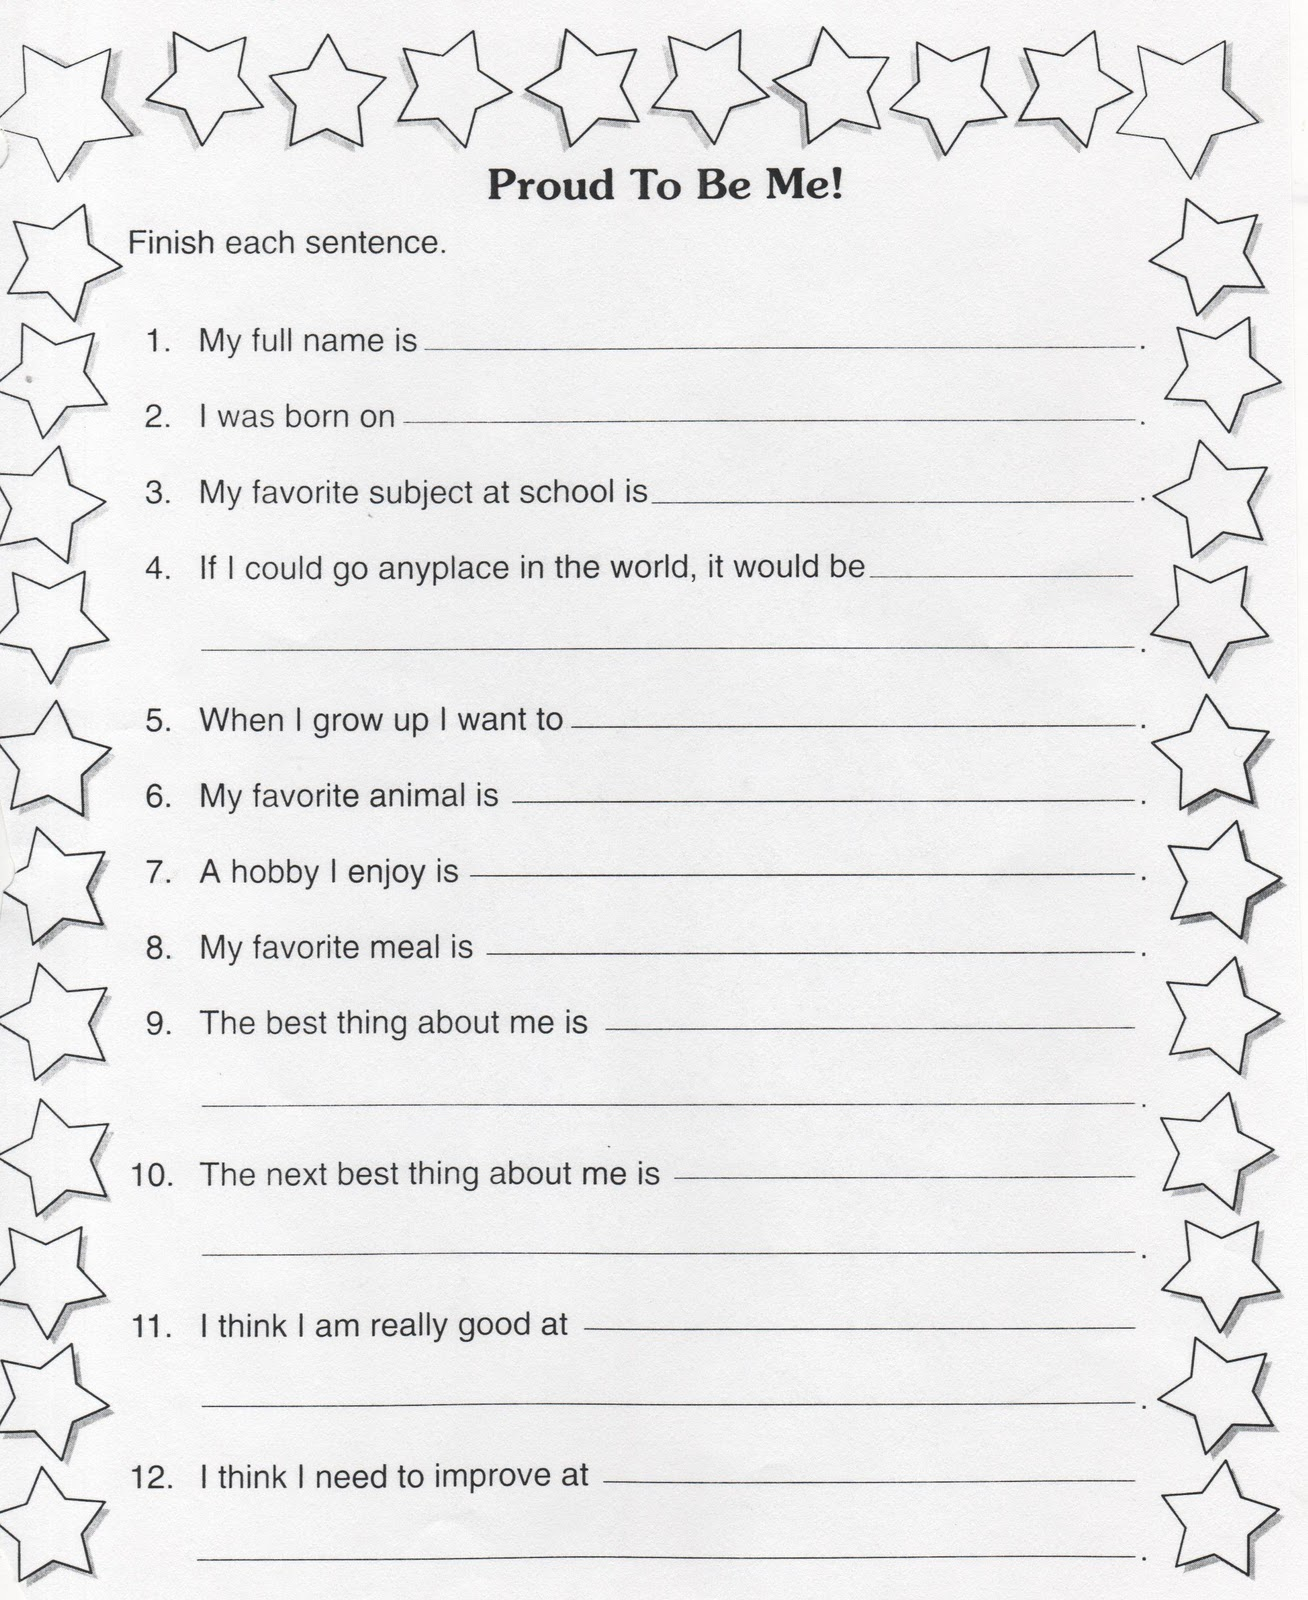 worksheet Get To Know You Worksheet elementary school enrichment activities beginning of the year get to know you papers